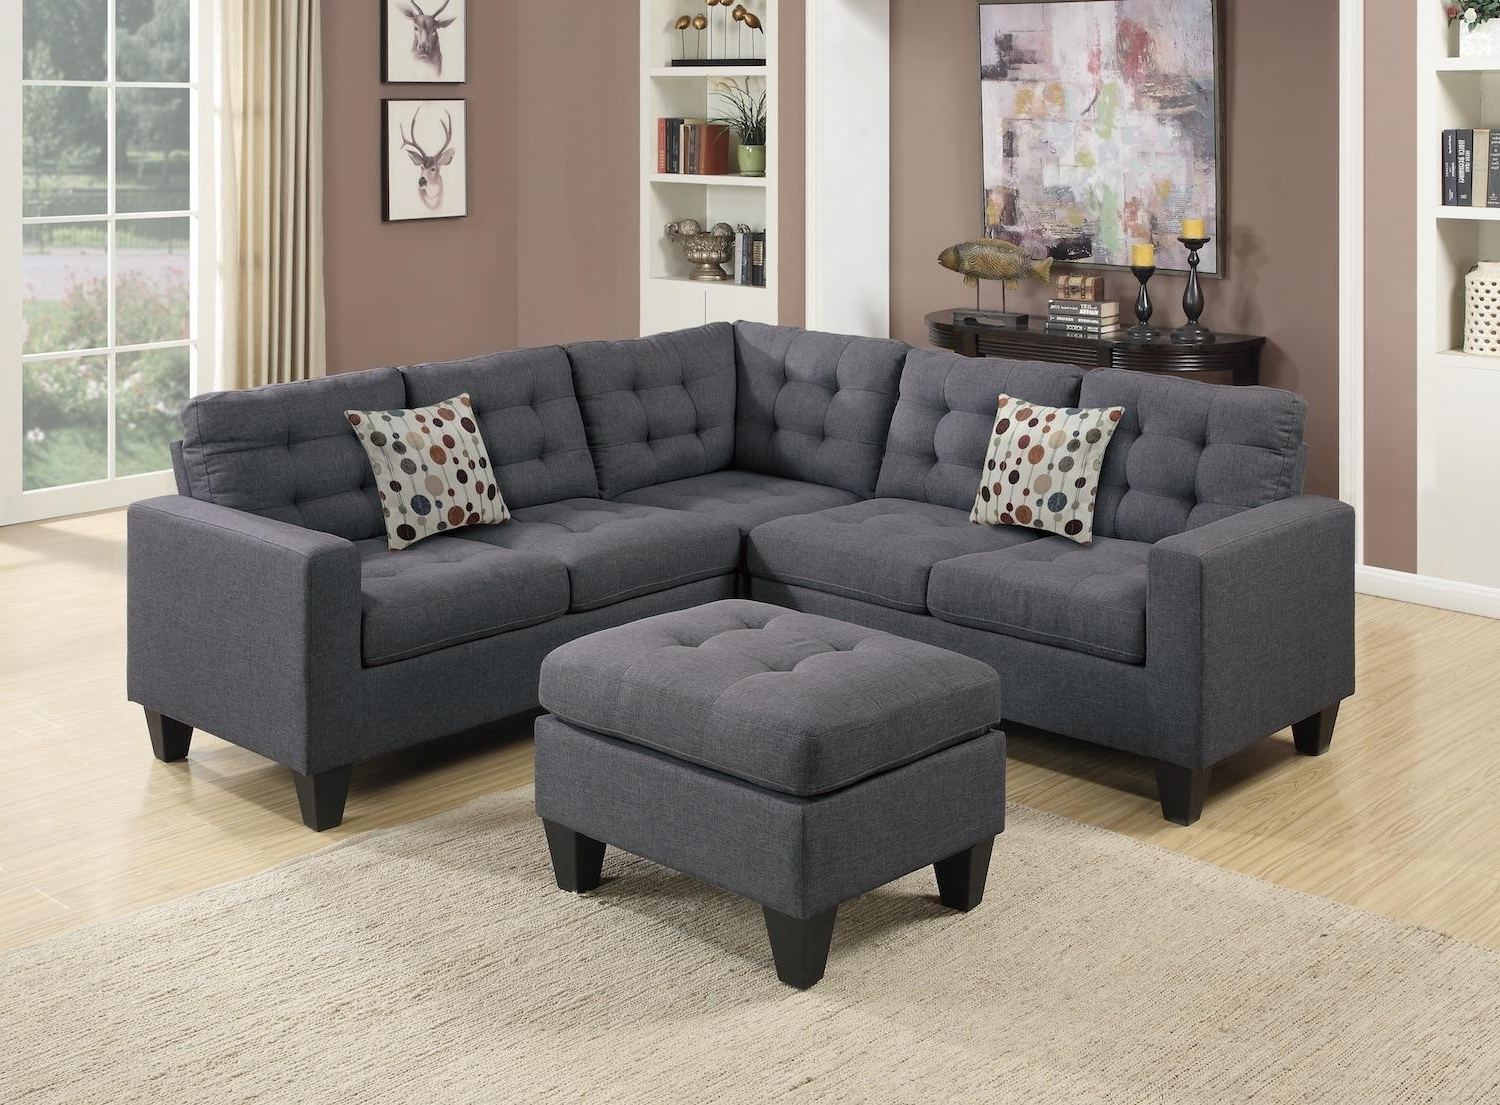 Fashionable Wayfair, Ifin1022, Amazon, Poundex, F6935, Grey, Sectional, Sofa Inside Wayfair Sectional Sofas (View 3 of 15)